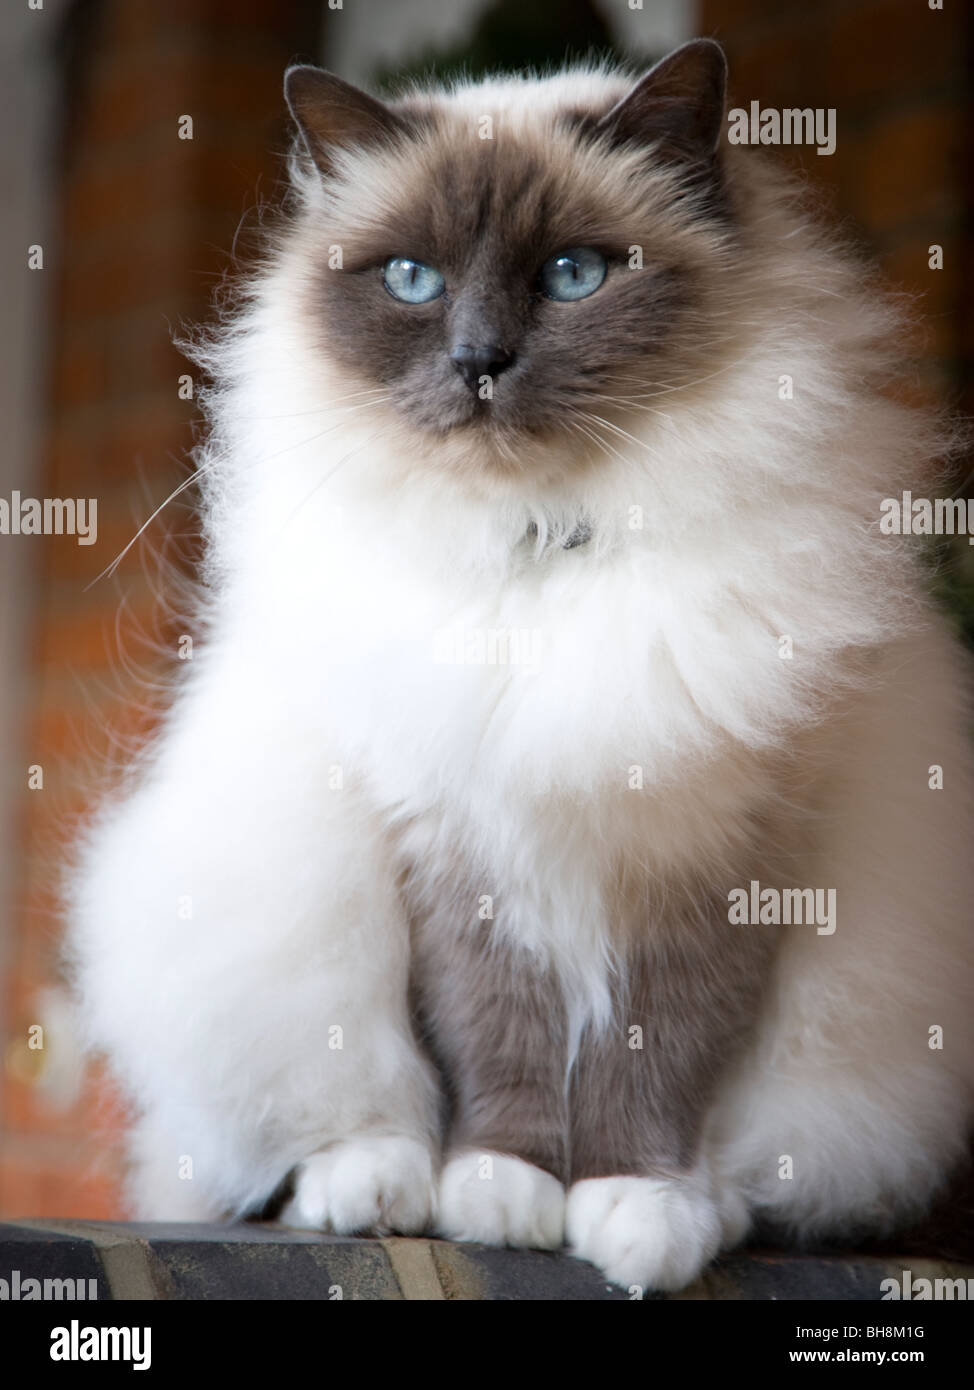 M Birman Cia S.a.i.c A Birman breed cat wit...